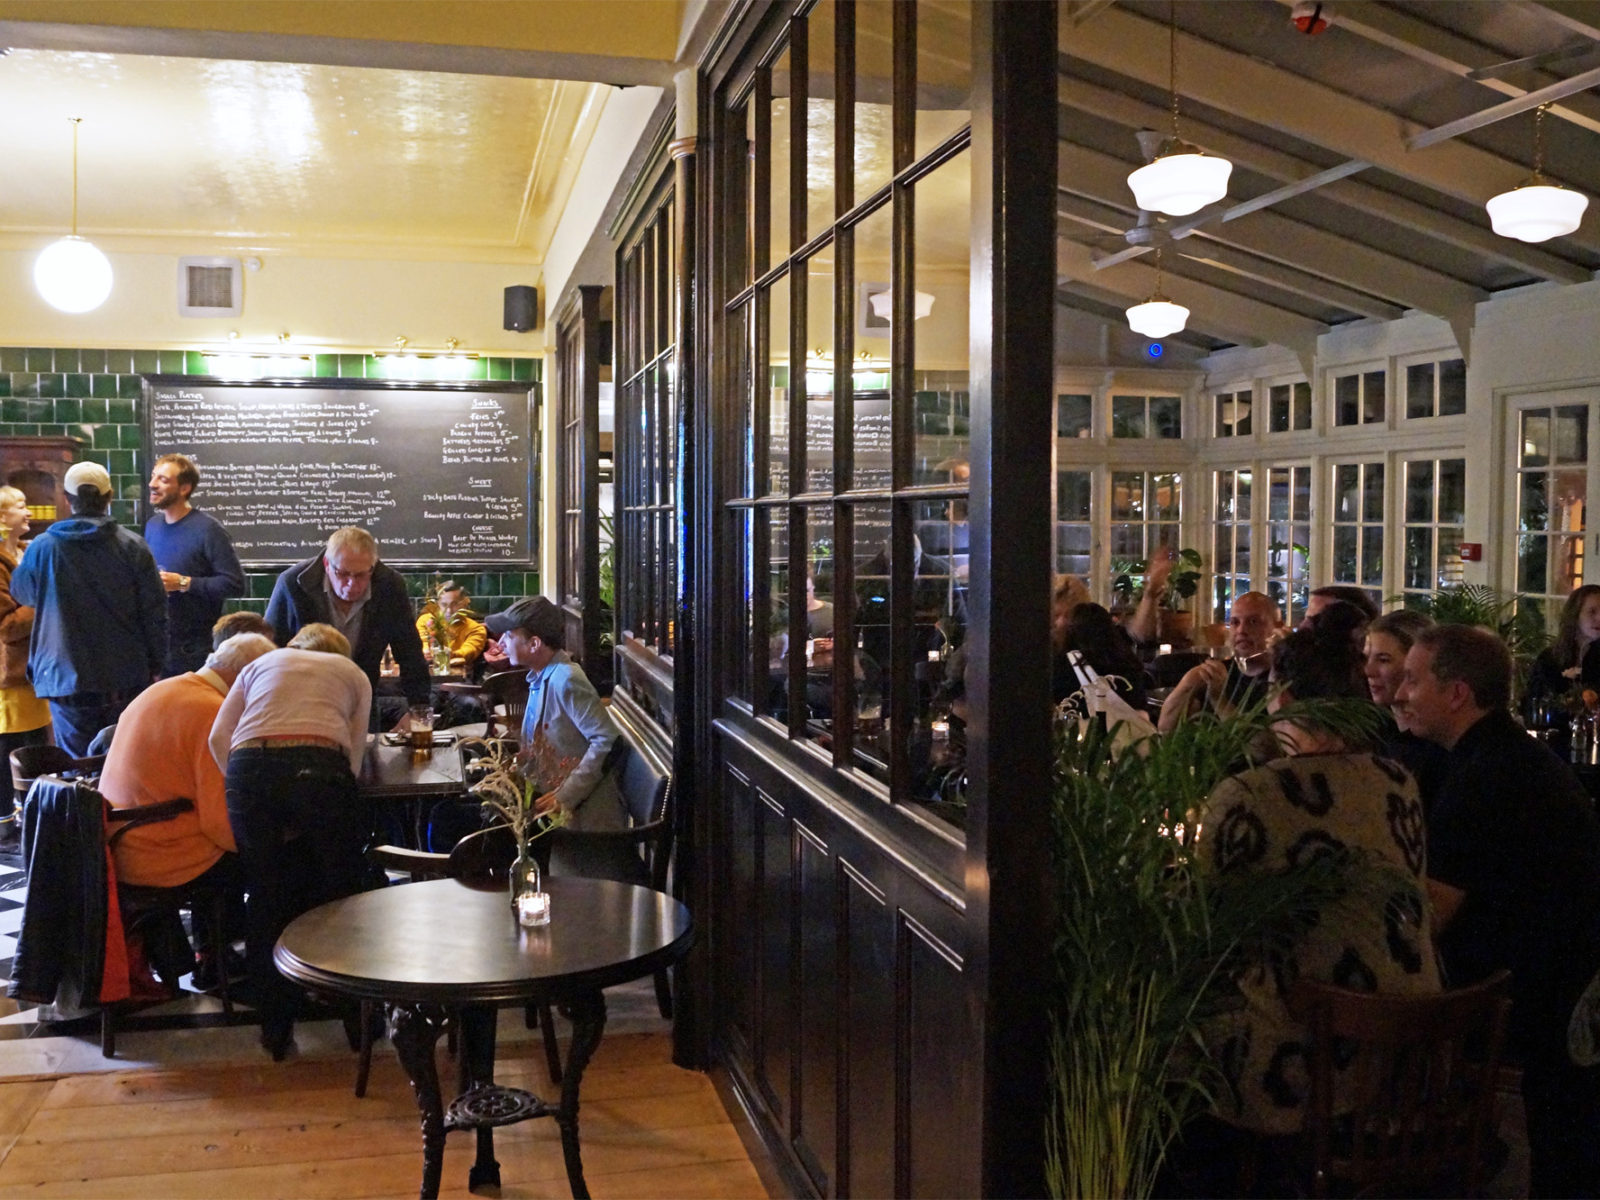 Both our inside and conservatory area offer space for a nice meal